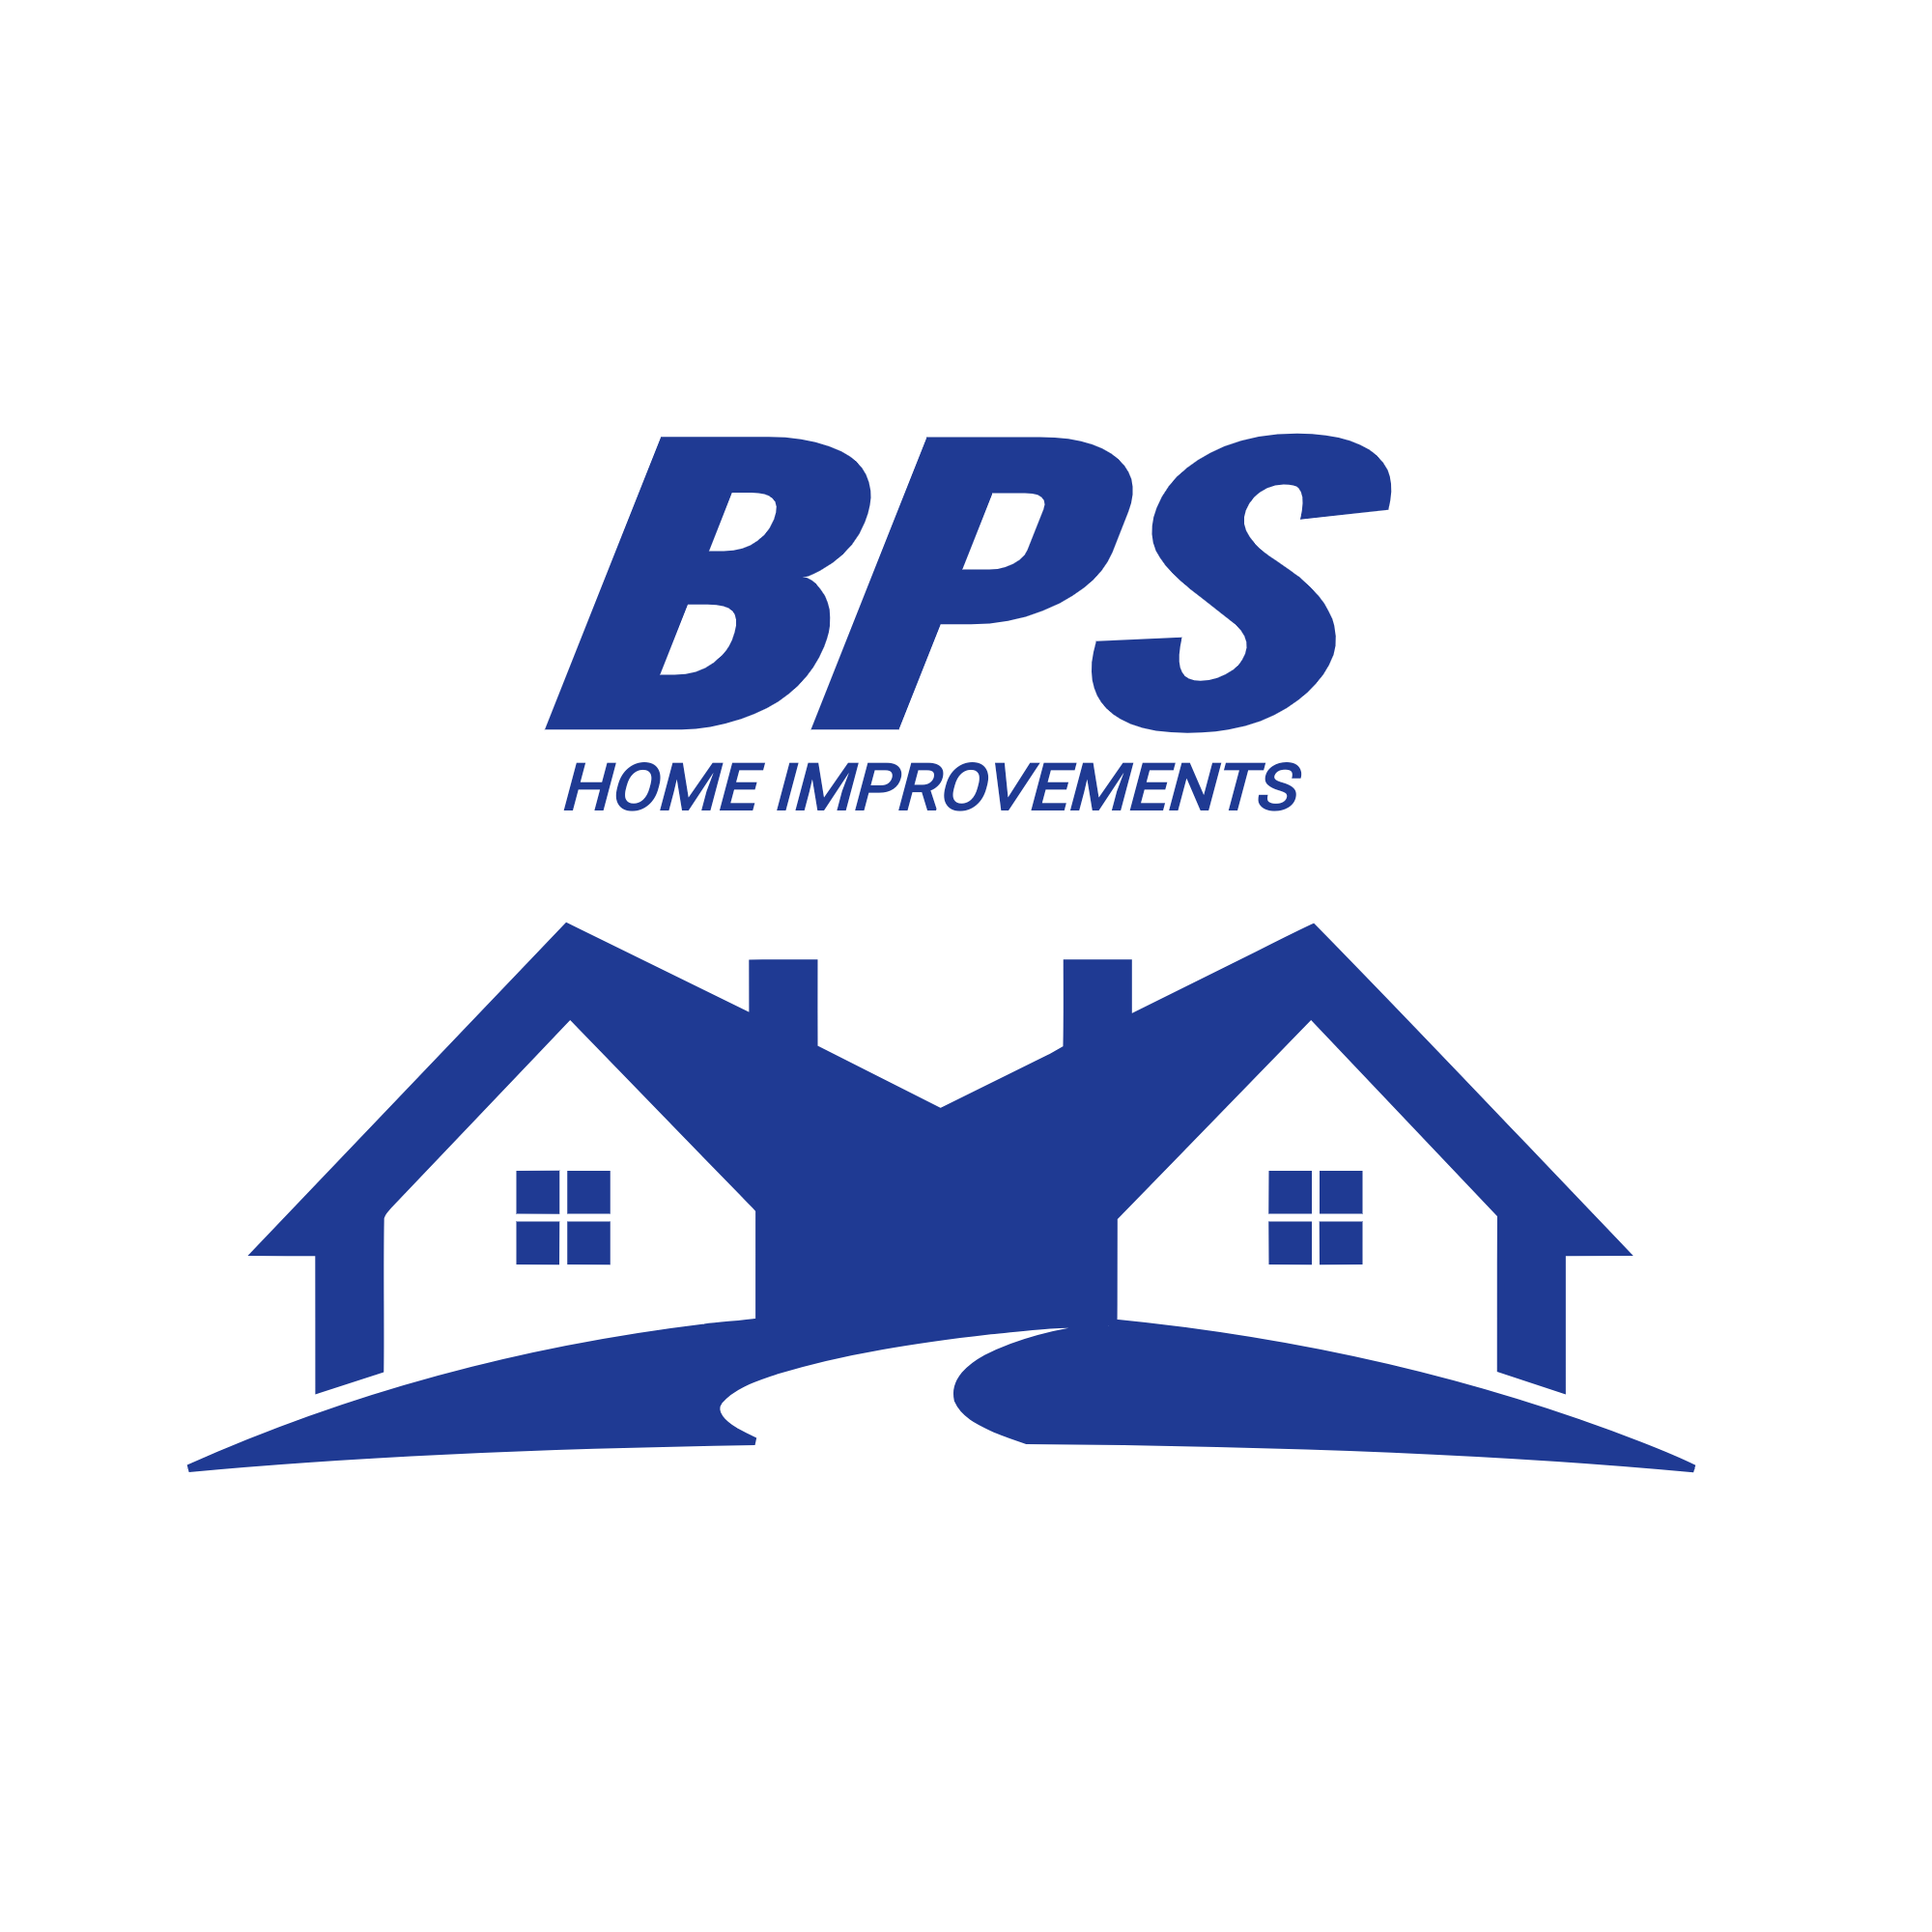 BPS Home Improvements